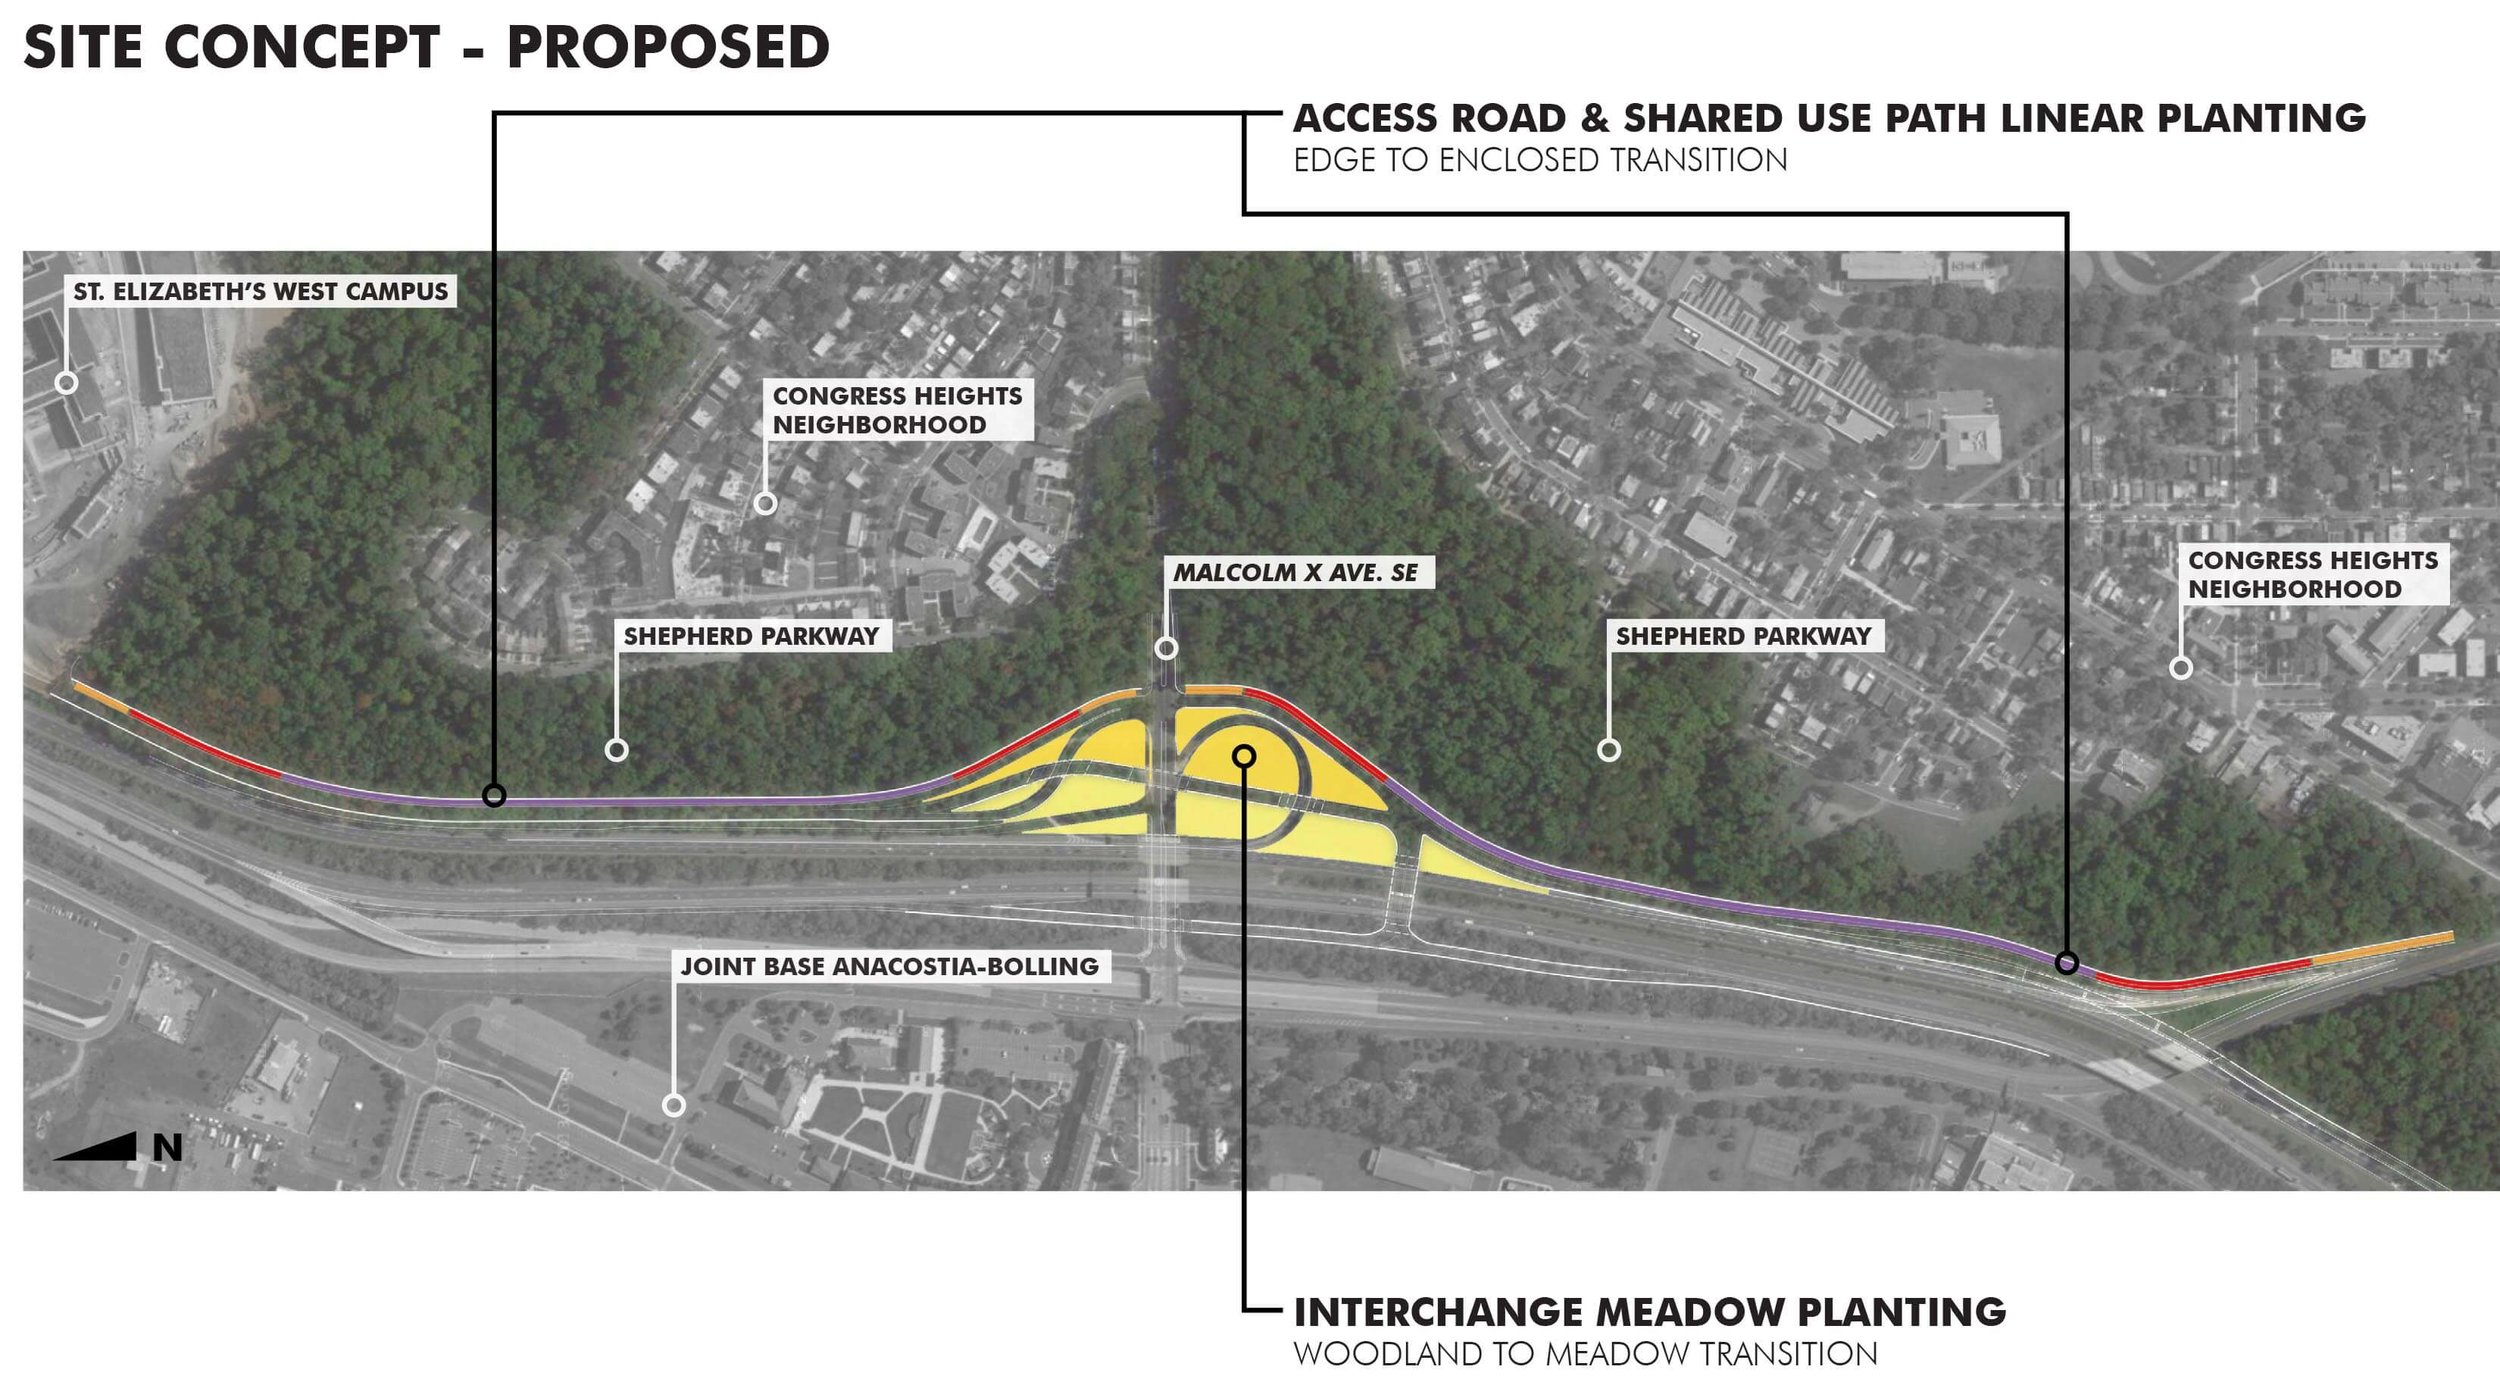 05-Access Road Ecotones-Proposed Site Concept.jpg